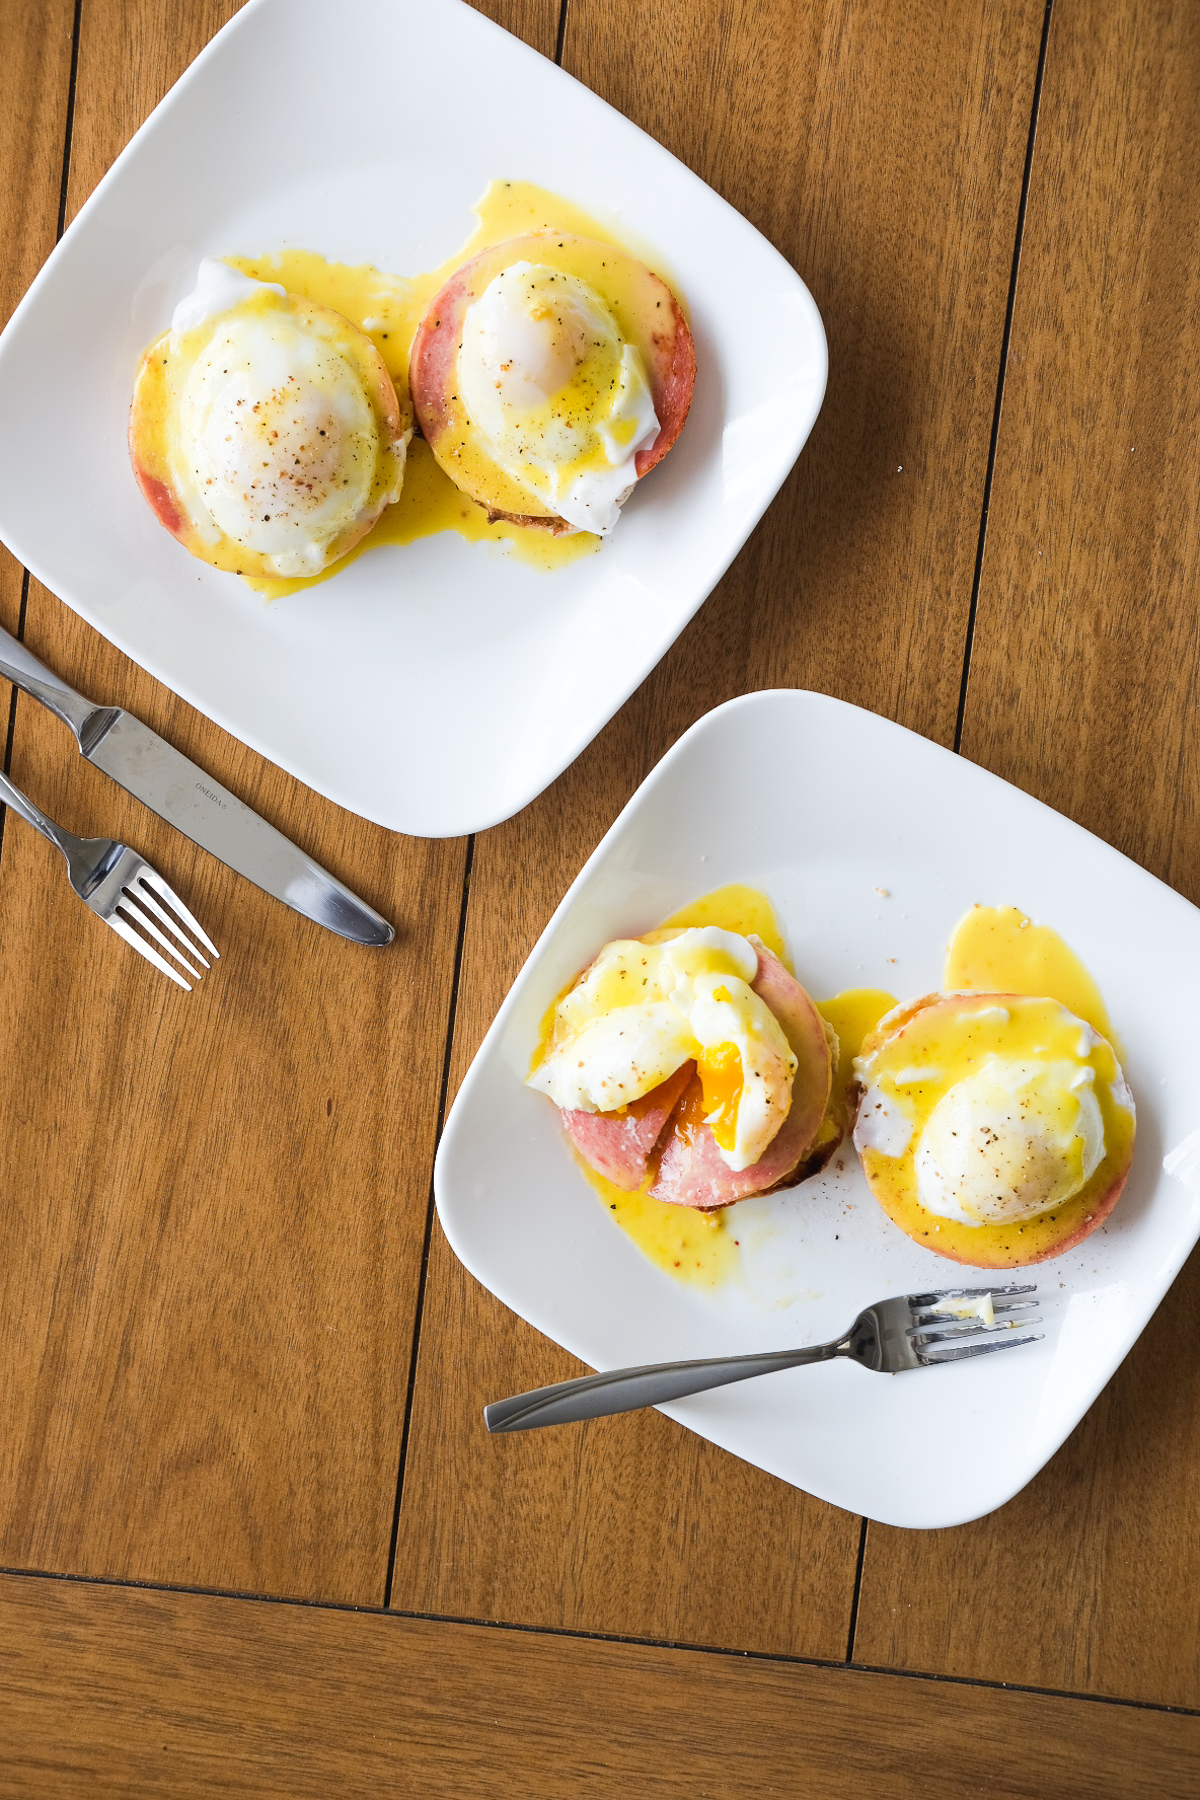 breaking into a plate of eggs benedict